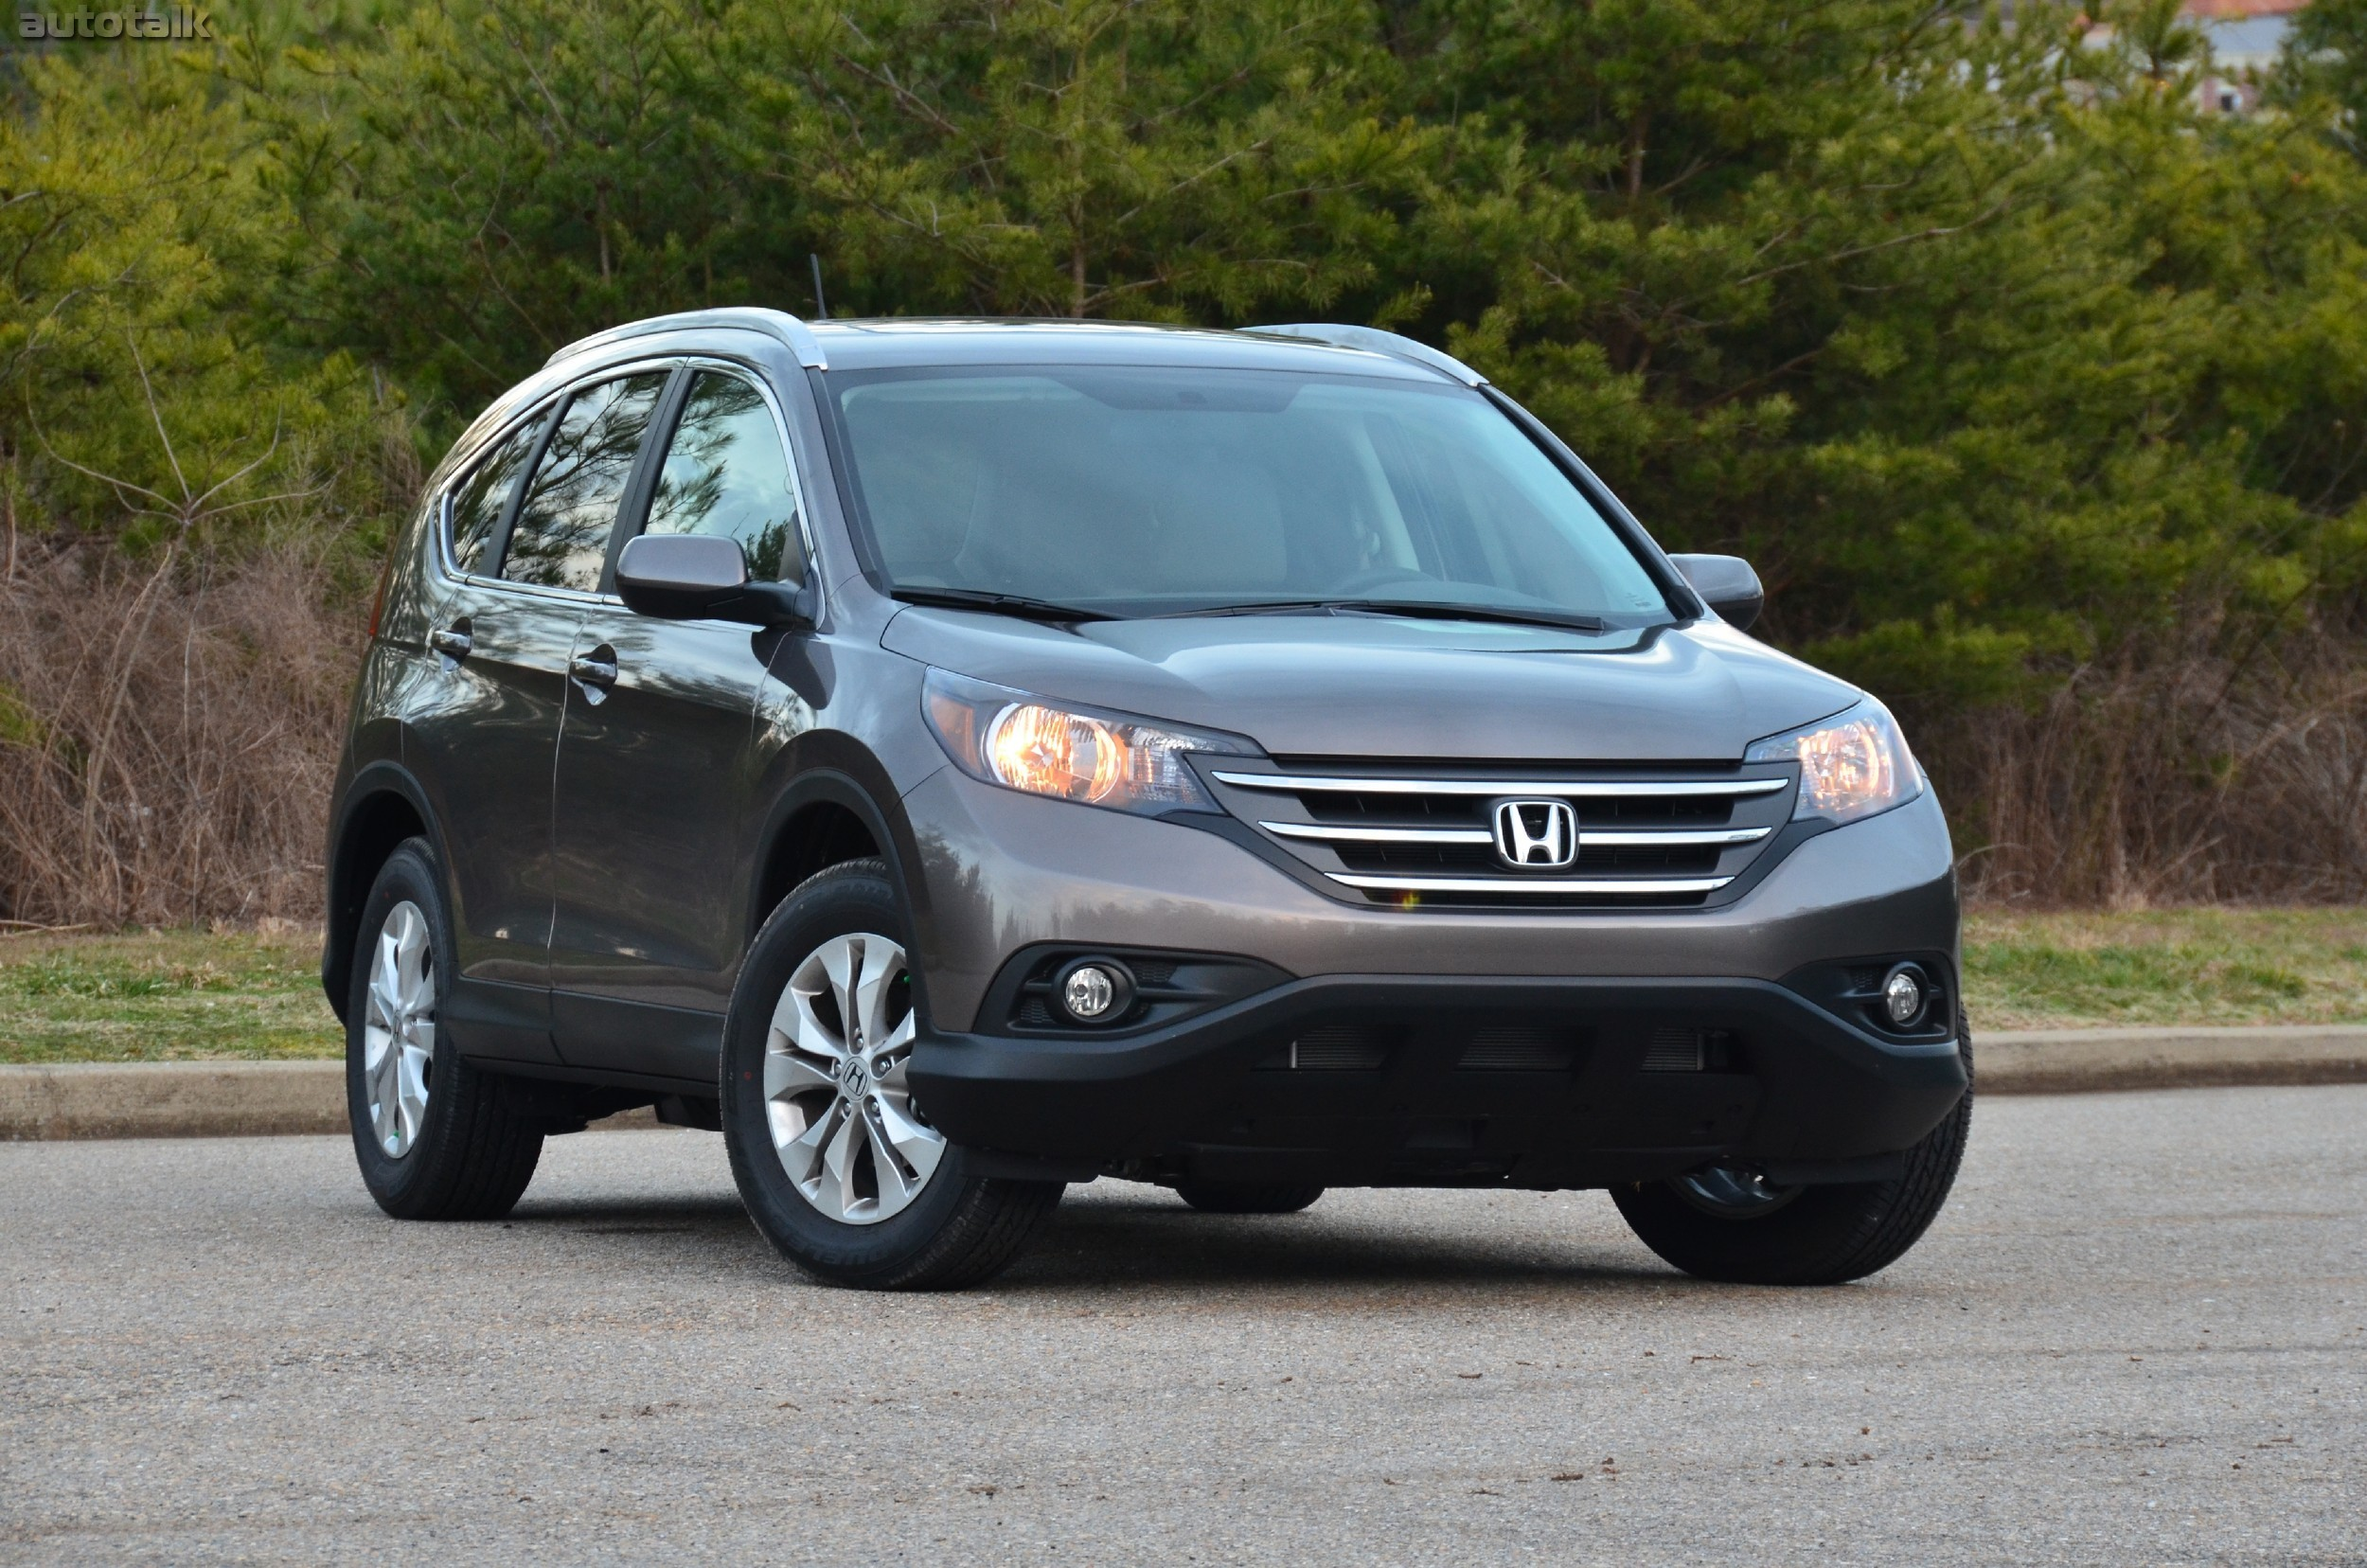 2012 honda cr v review autotalk. Black Bedroom Furniture Sets. Home Design Ideas